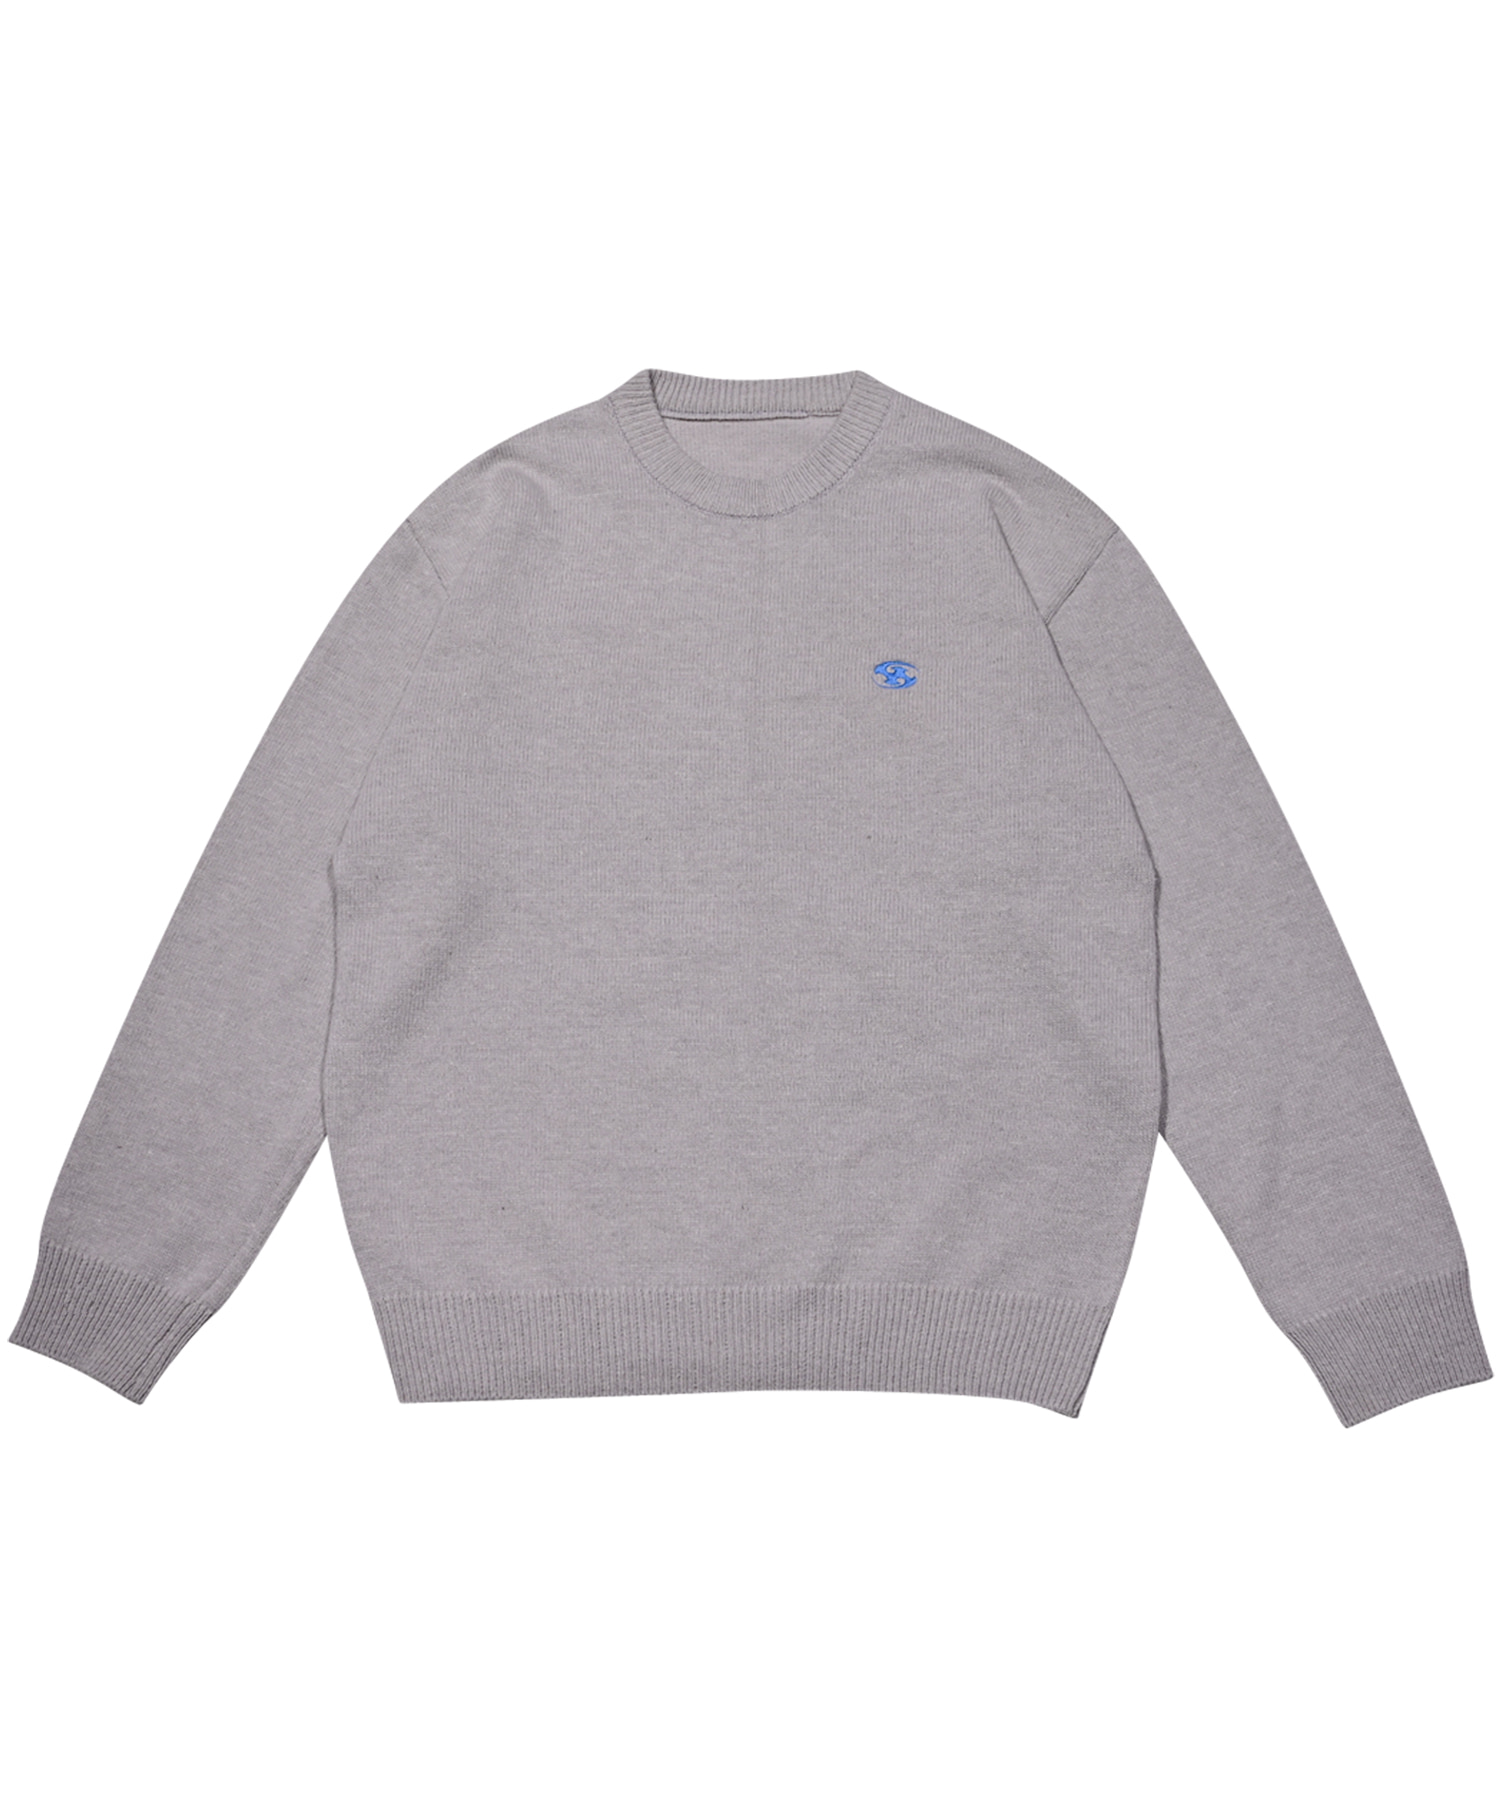 LOGO KNIT GRAY (be released in Oct.)